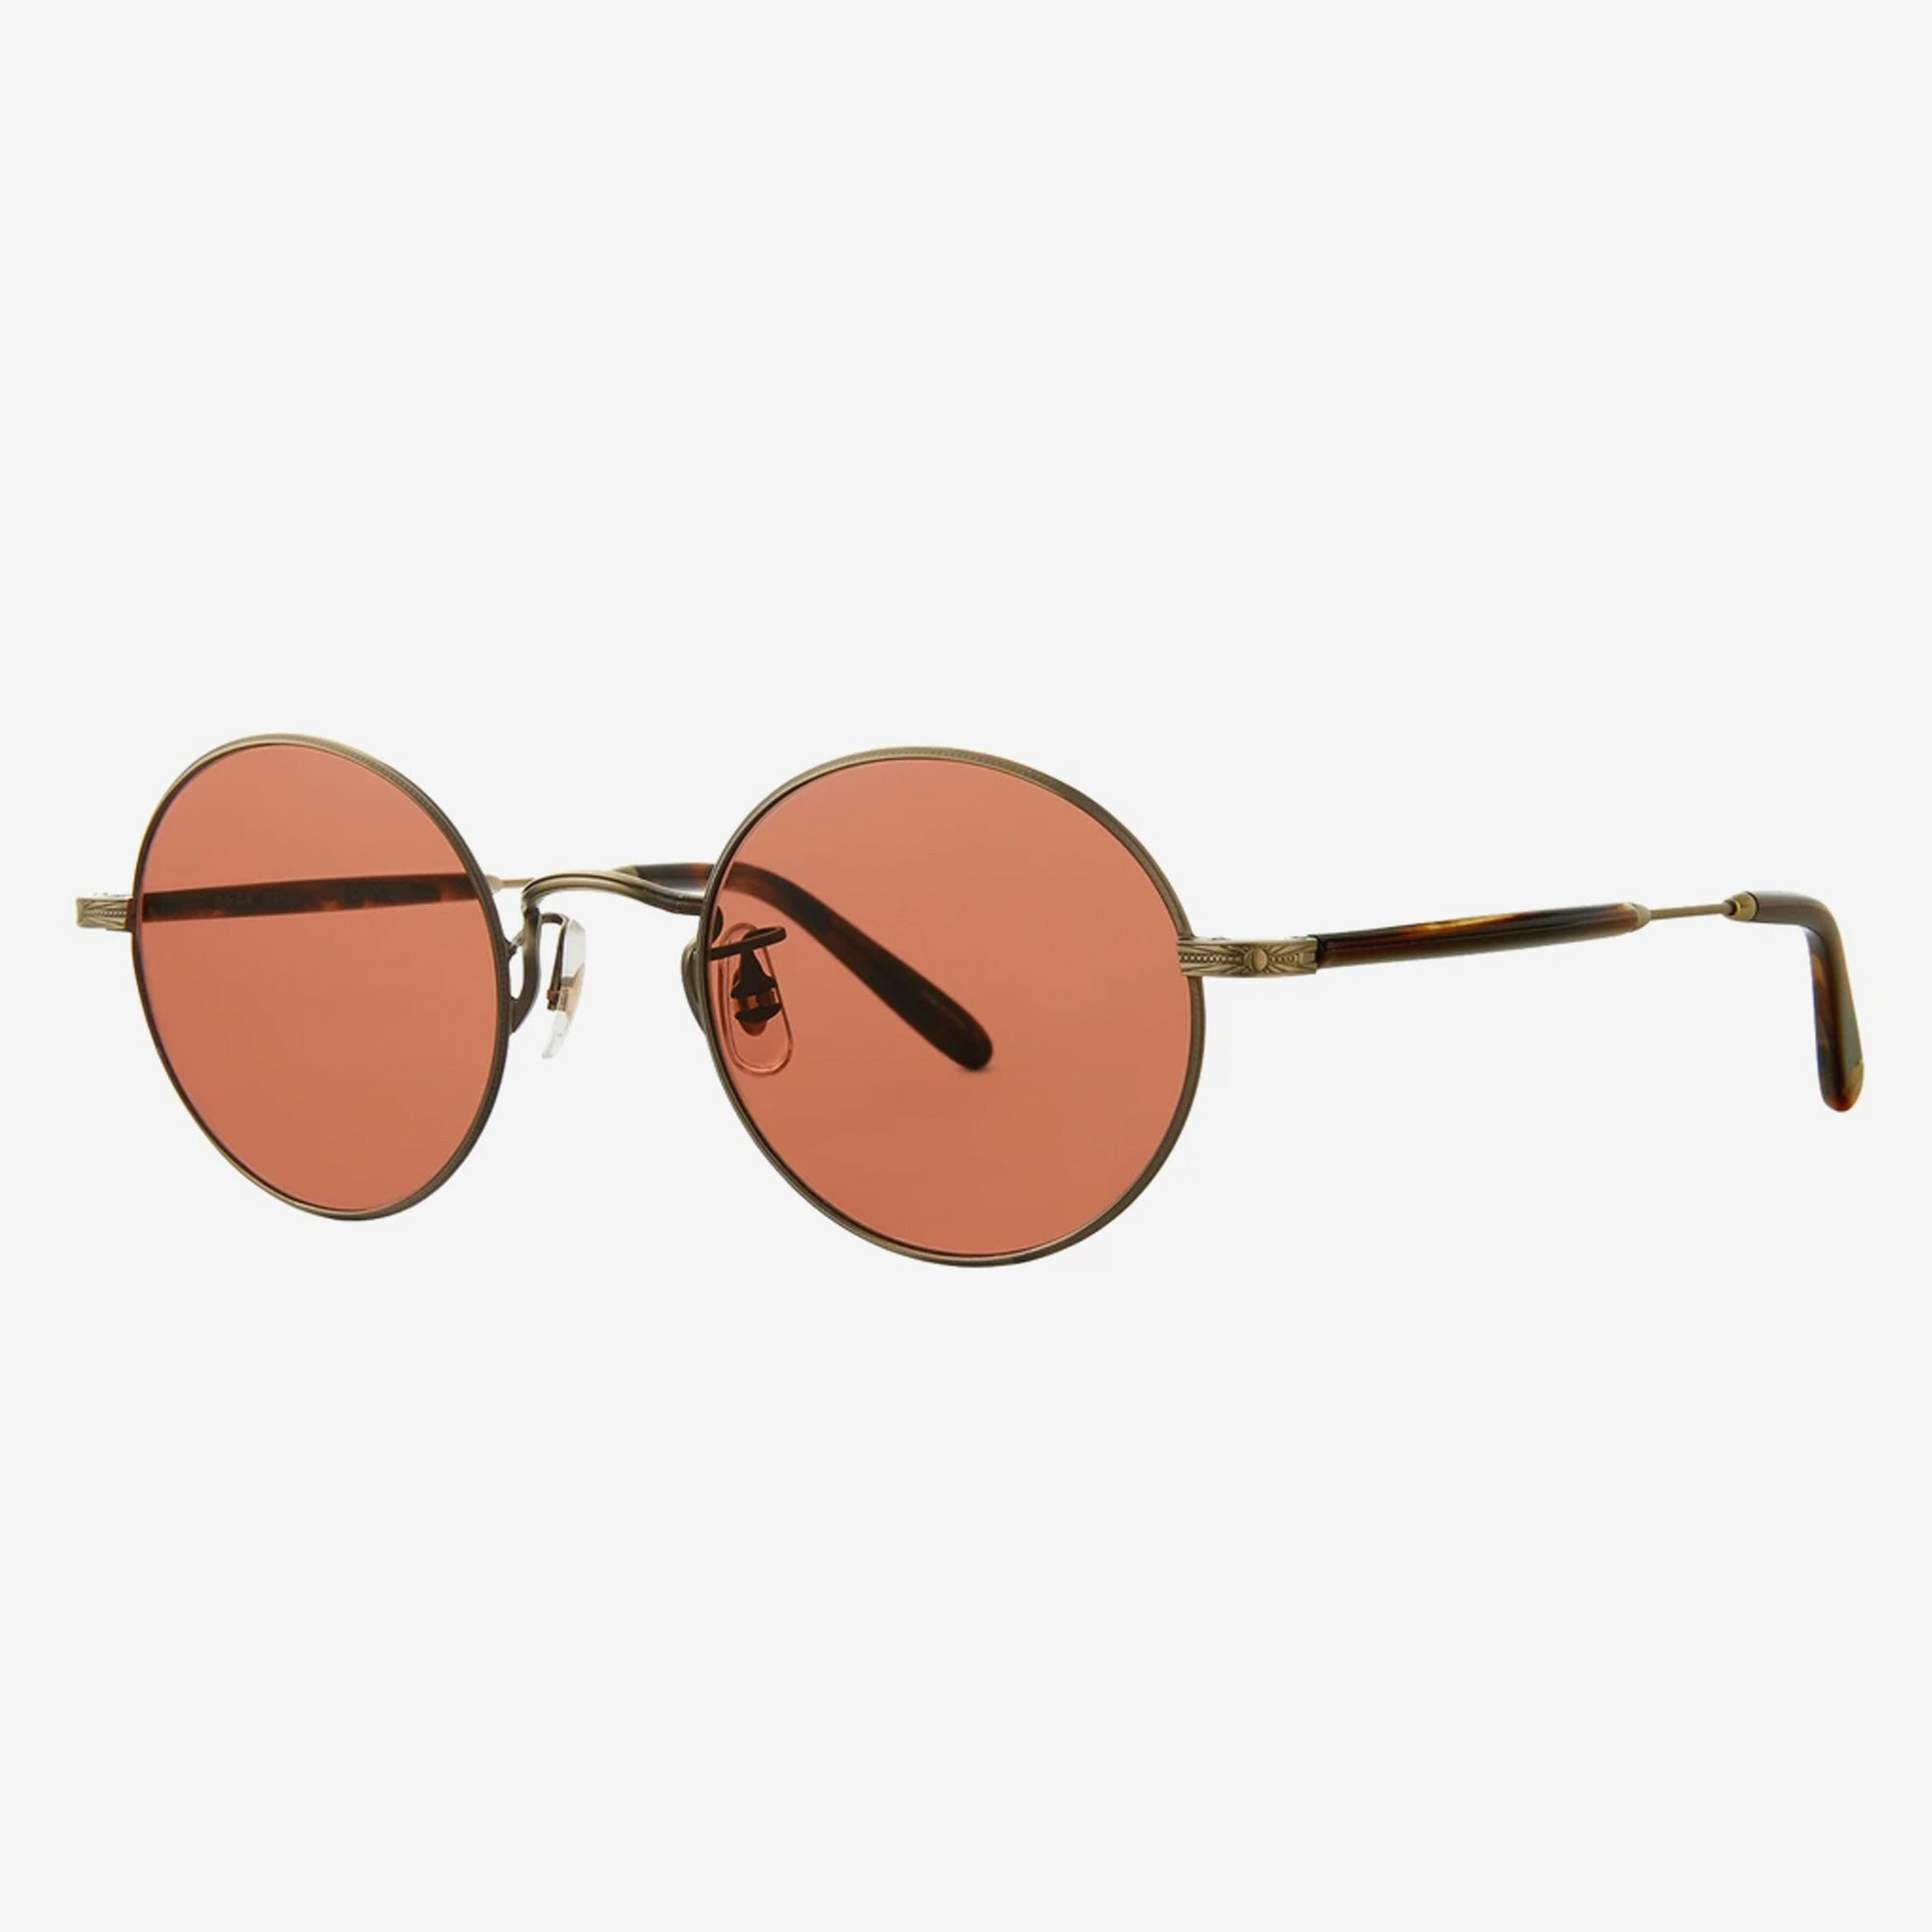 Garrett Leight Lovers Sunglasses - Antique Gold II-Brown Marble Tort / Pure Rosewood 2